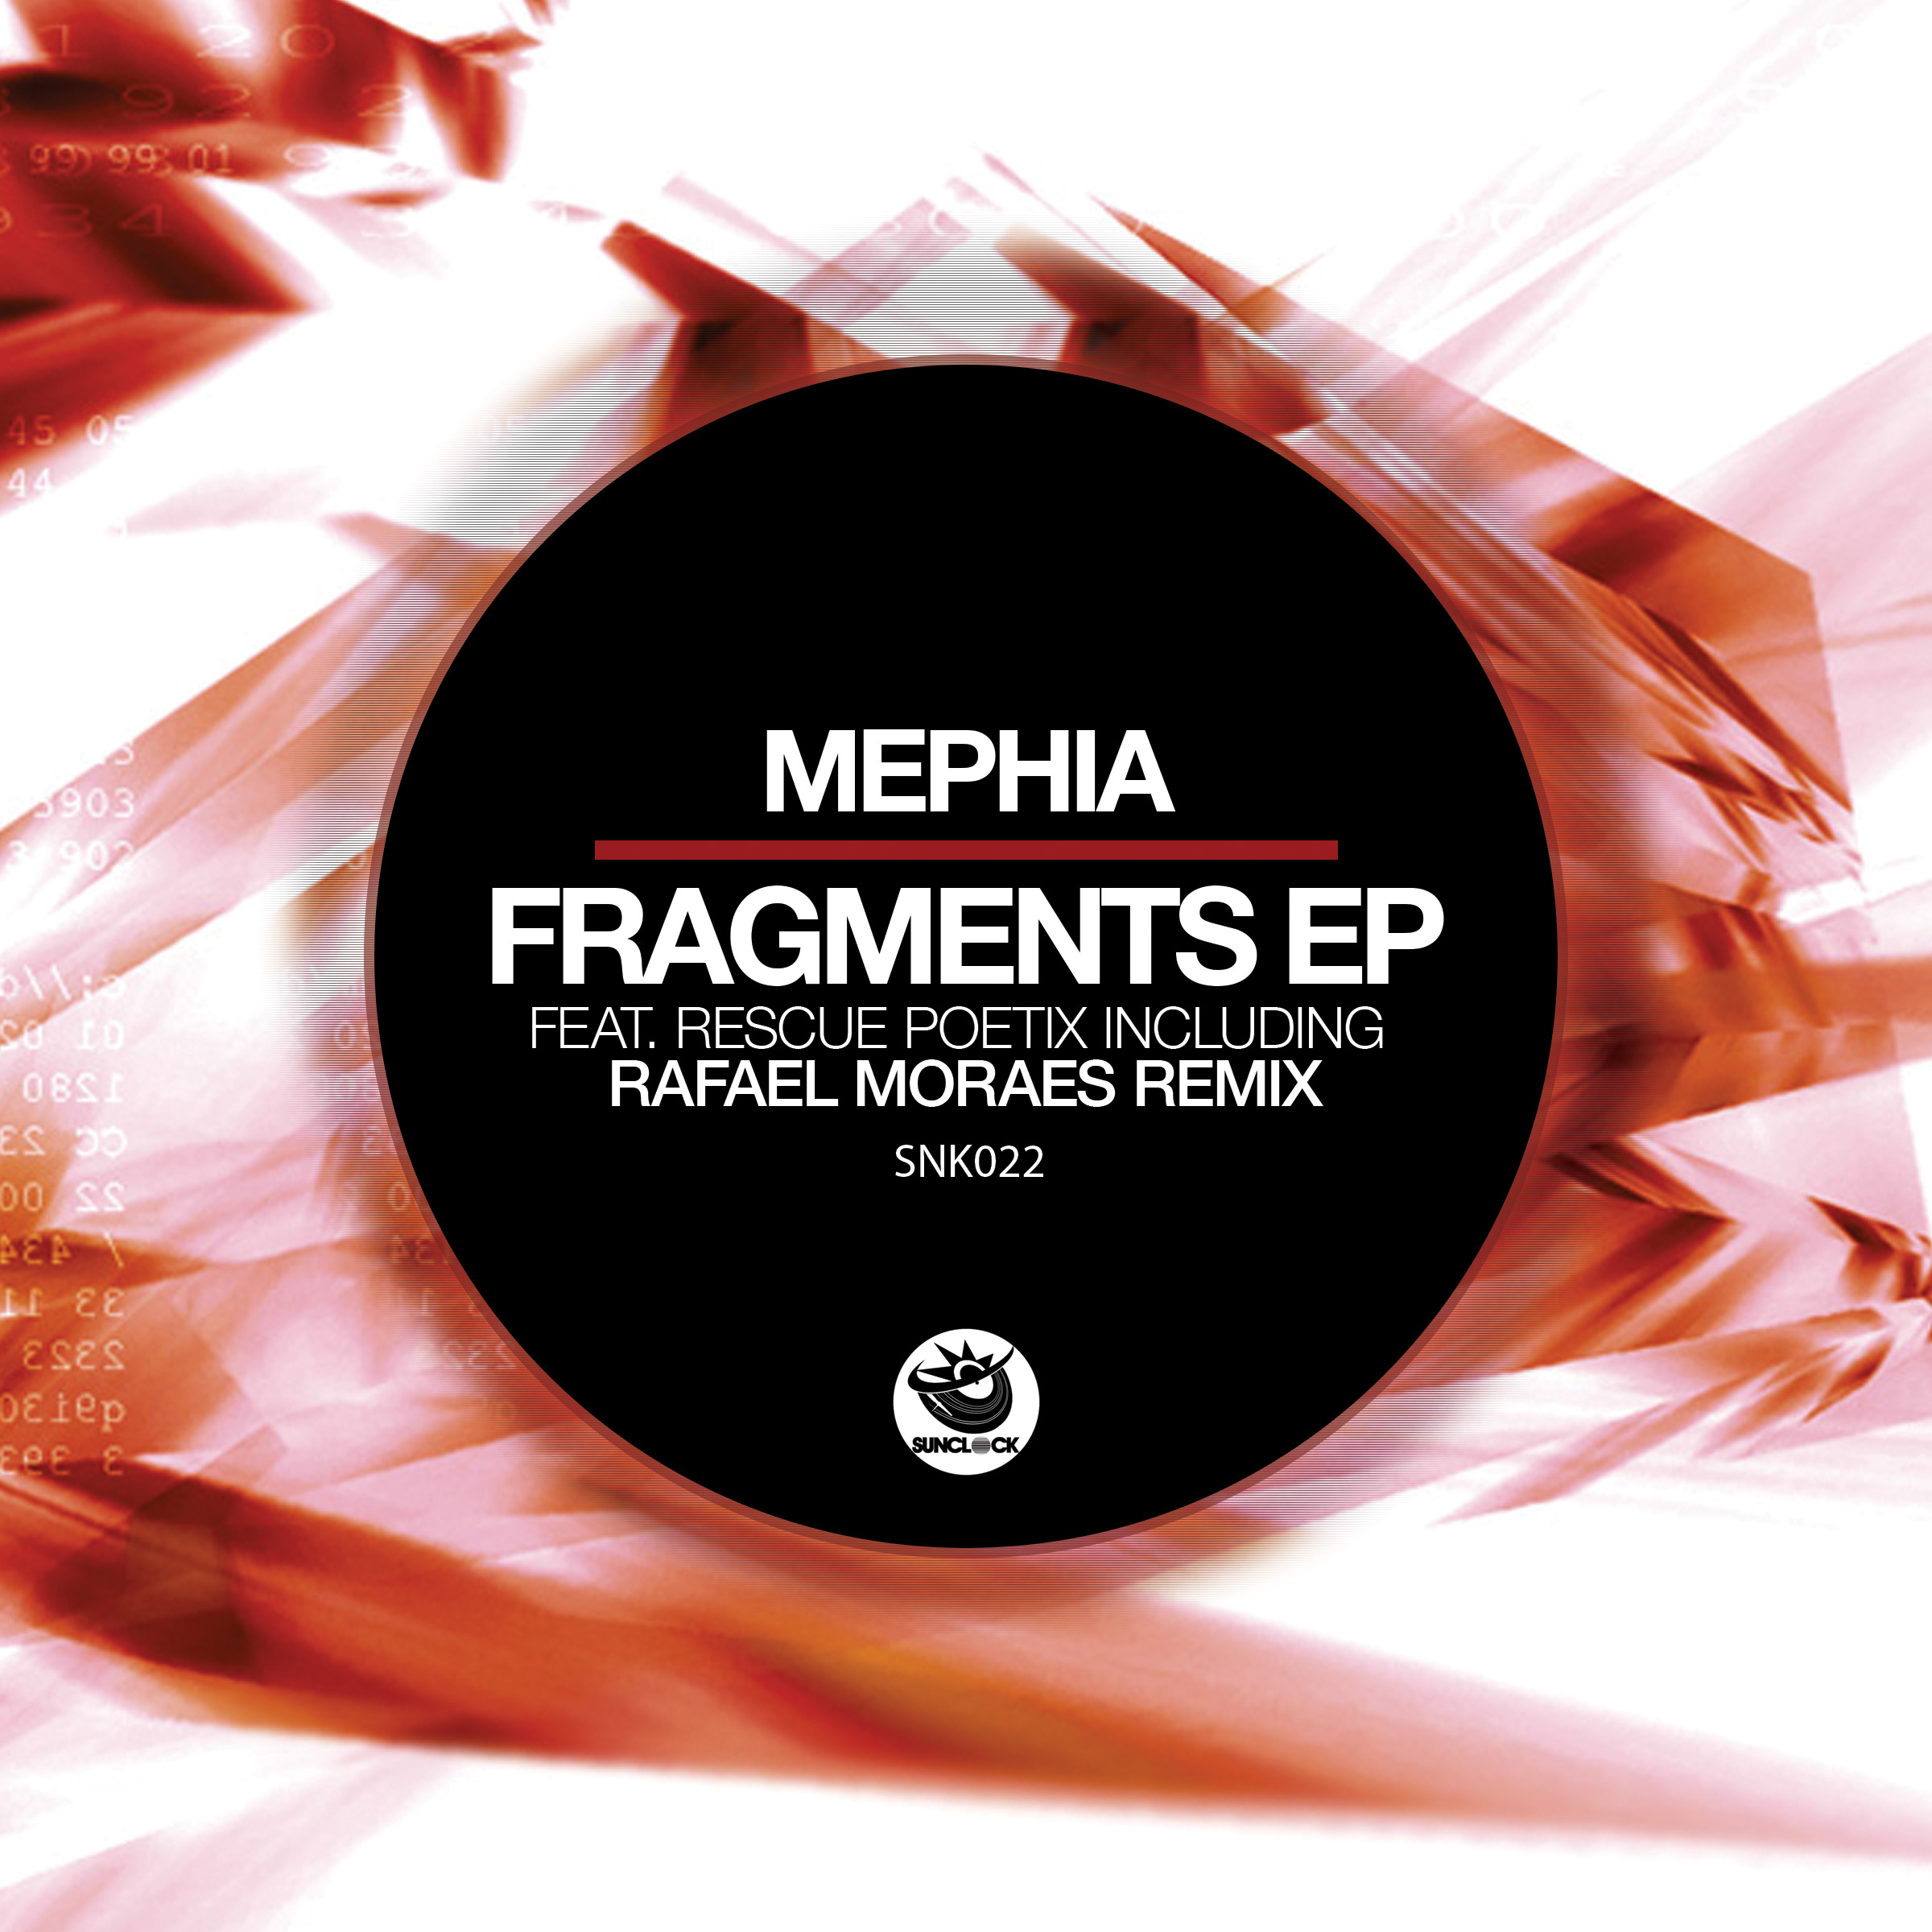 Mephia - Fragments Ep (incl. feat. Rescue Poetix and Rafael Moraes Remix) - SNK022 Cover